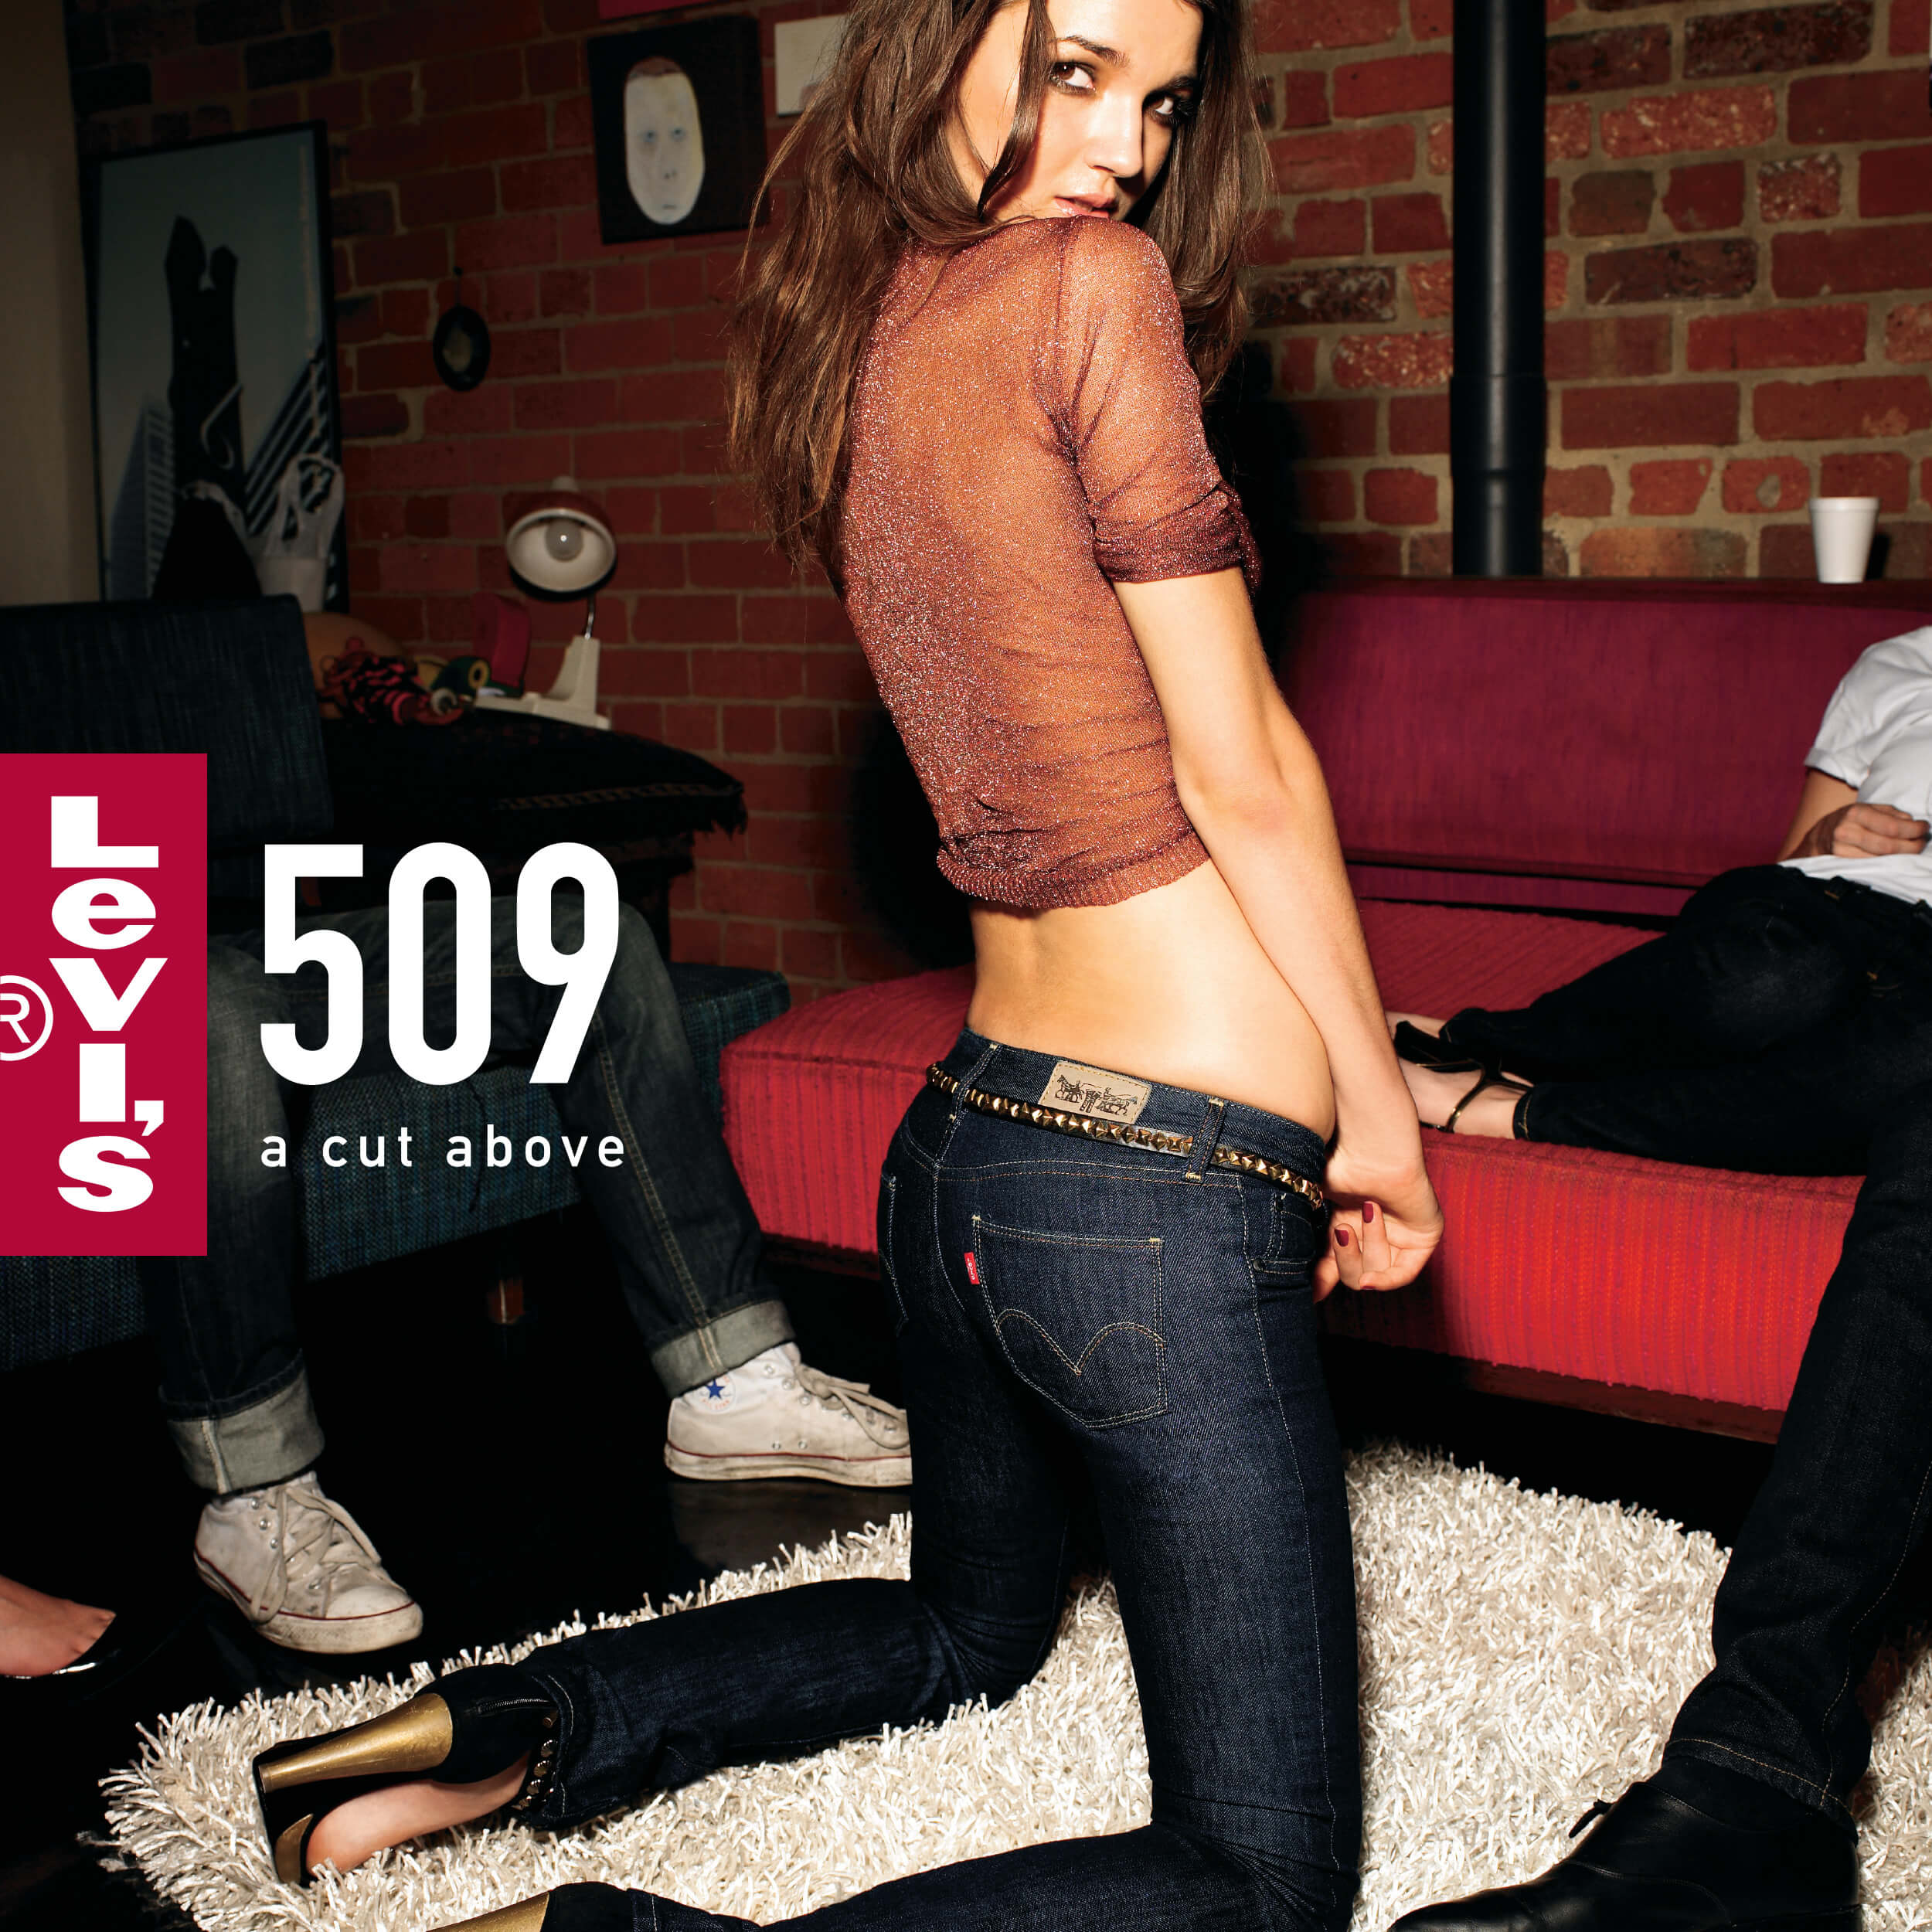 Levi's: A Cut Above - Is a Fashion Shoot to launch their new 509 & 538 jeans in Australia. It was a giant photoshoot that turned into outdoor billboards and magazine print ads. I was responsible for the art on this project.